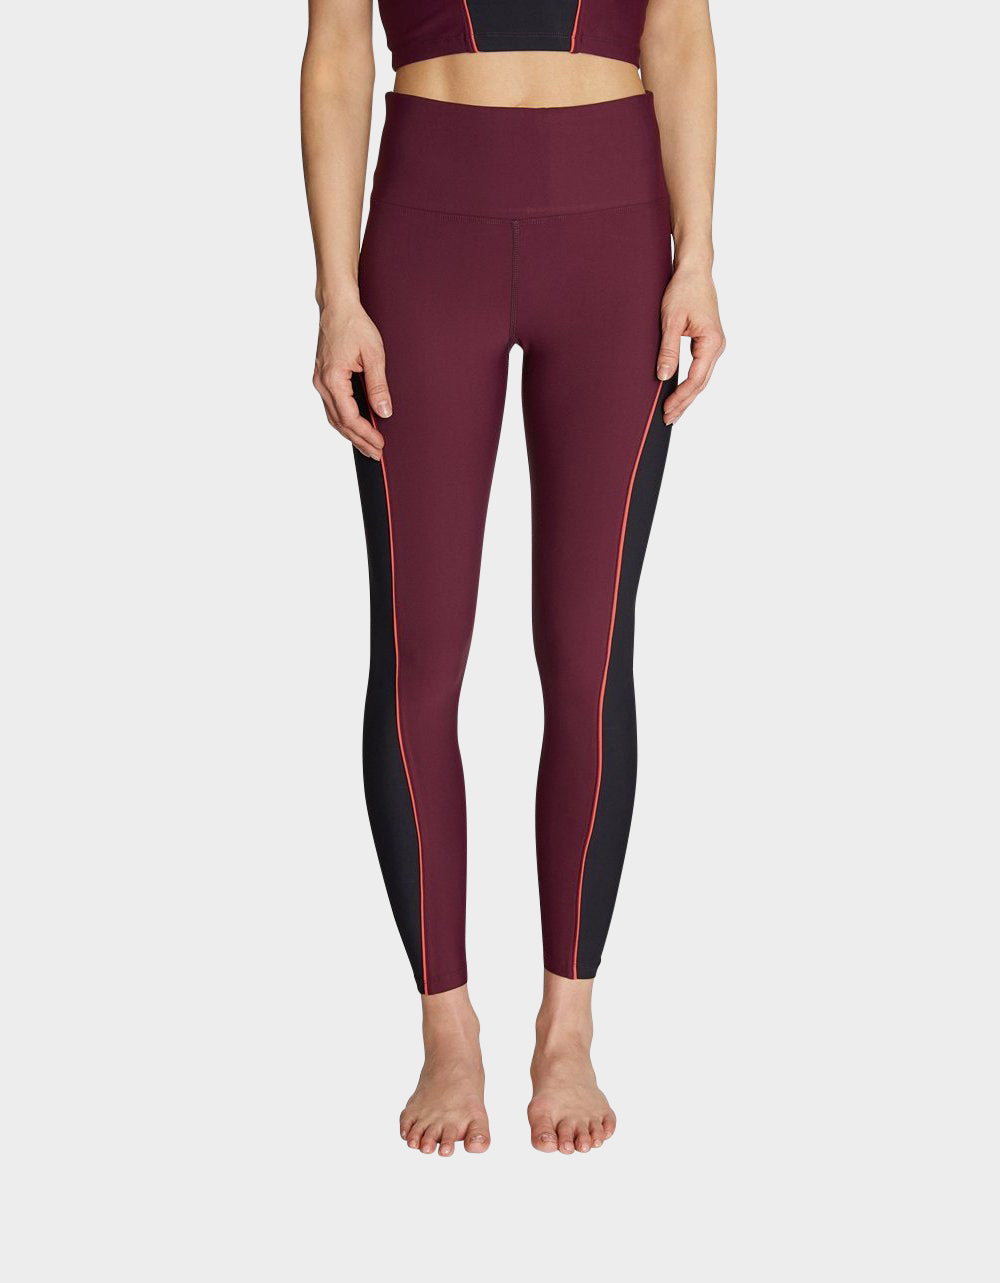 CONTRAST PIPED LEGGING WINE MULTI - APPAREL - Betsey Johnson